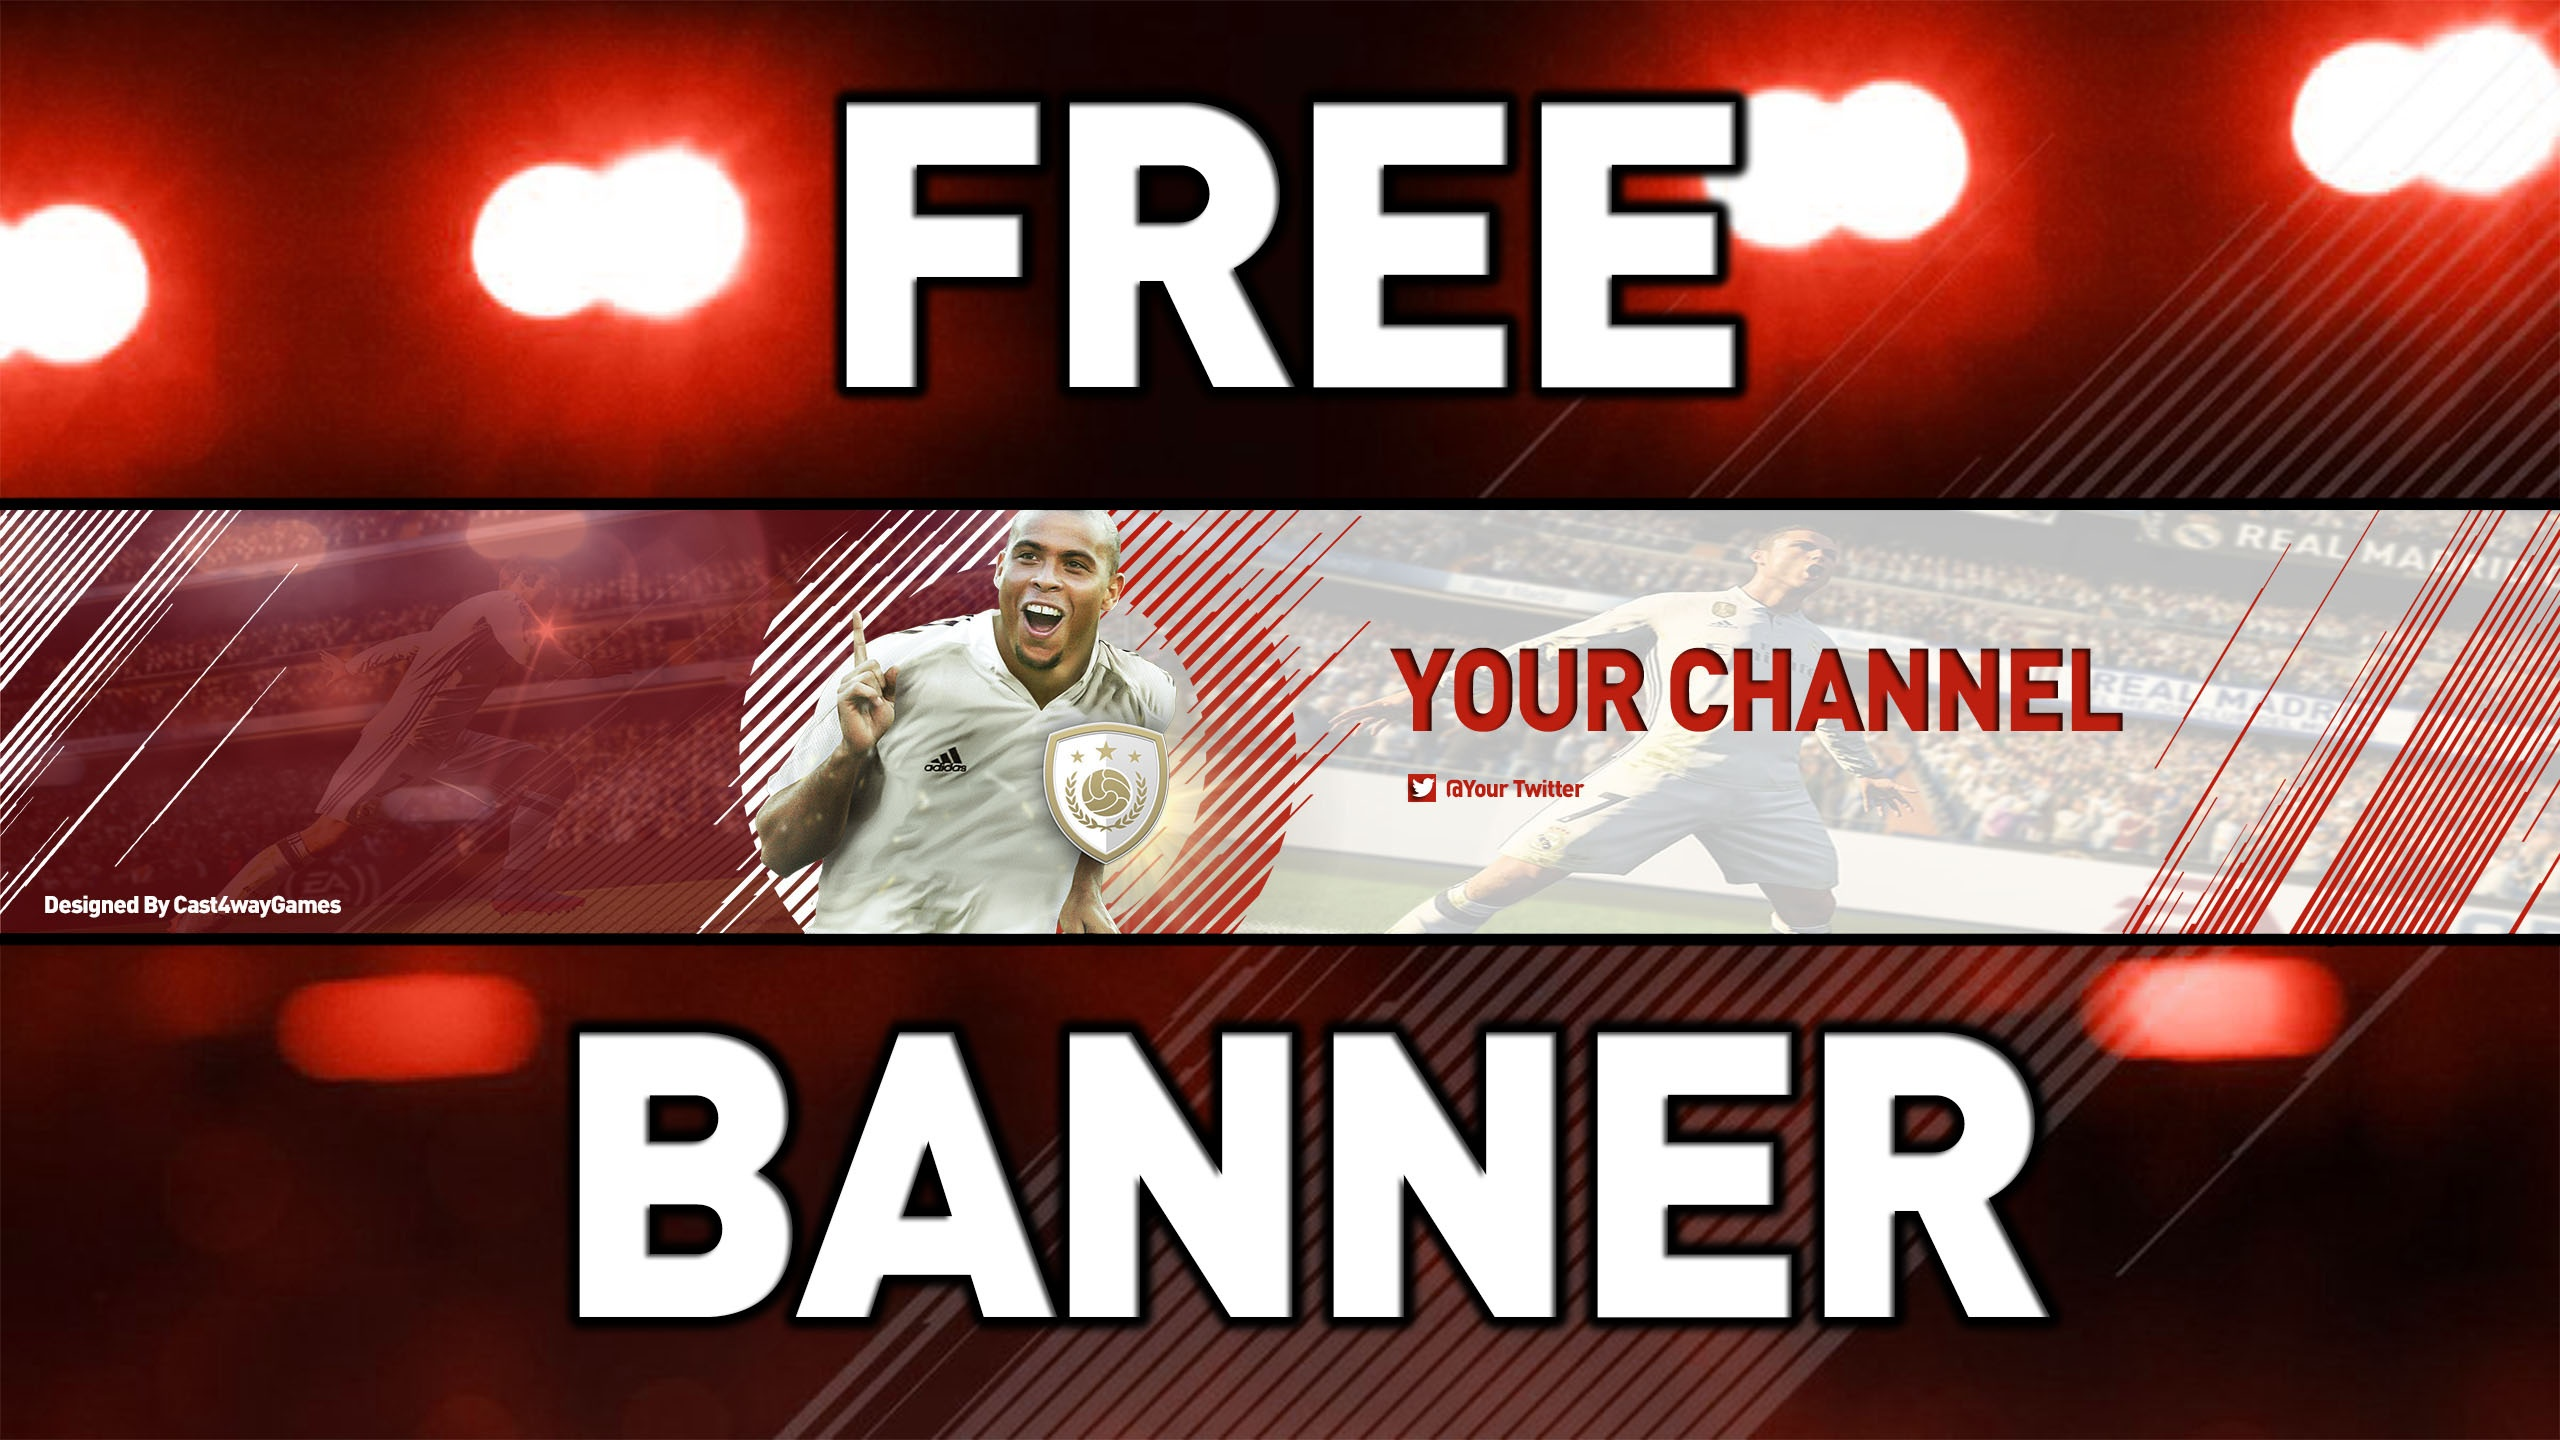 FIFA 18 Free Banner PSD